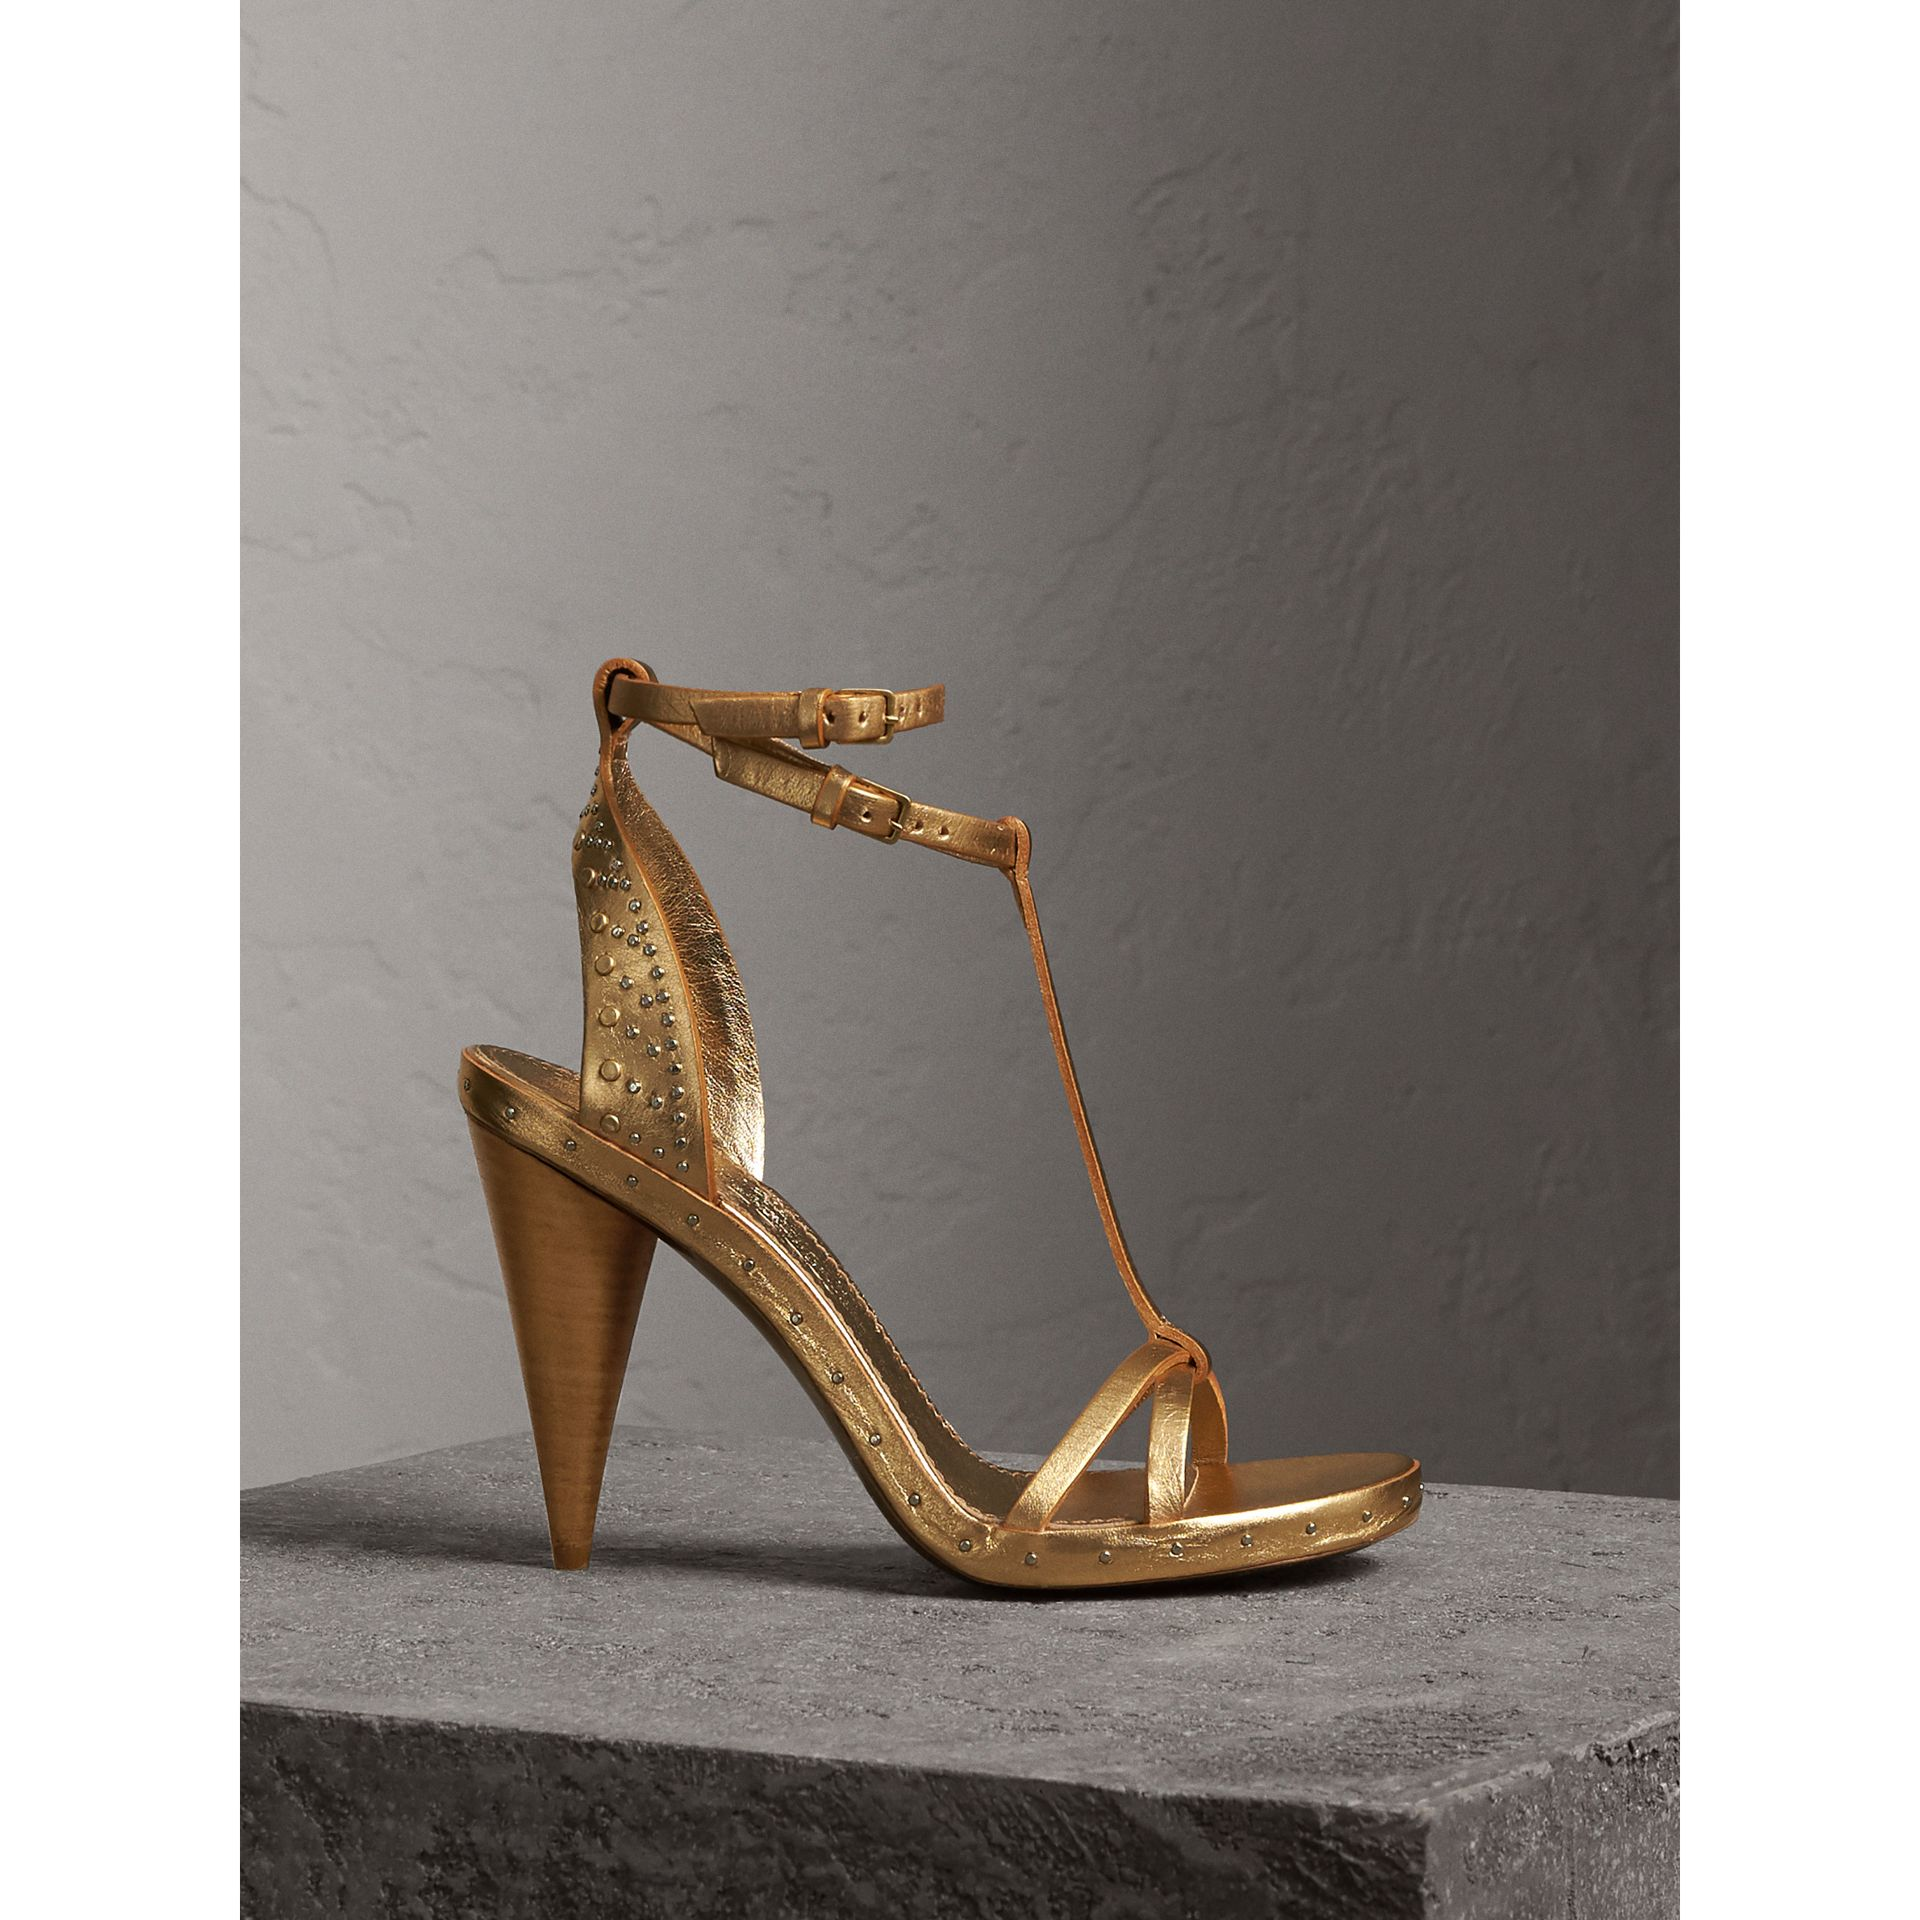 Riveted Metallic Leather High Cone-heel Sandals in Gold | Burberry - gallery image 1